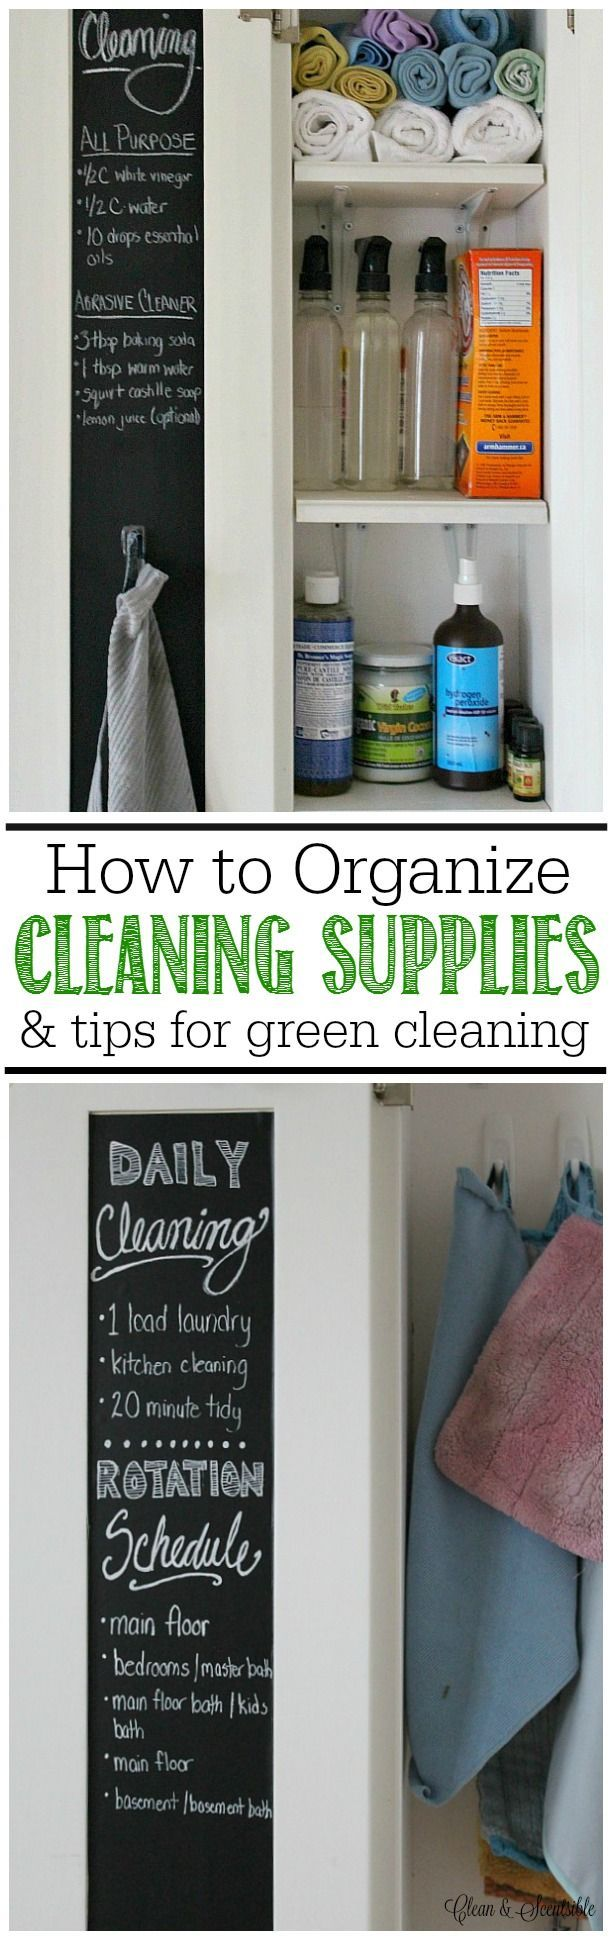 Great post on how to organize cleaning supplies and basic green cleaning tips.